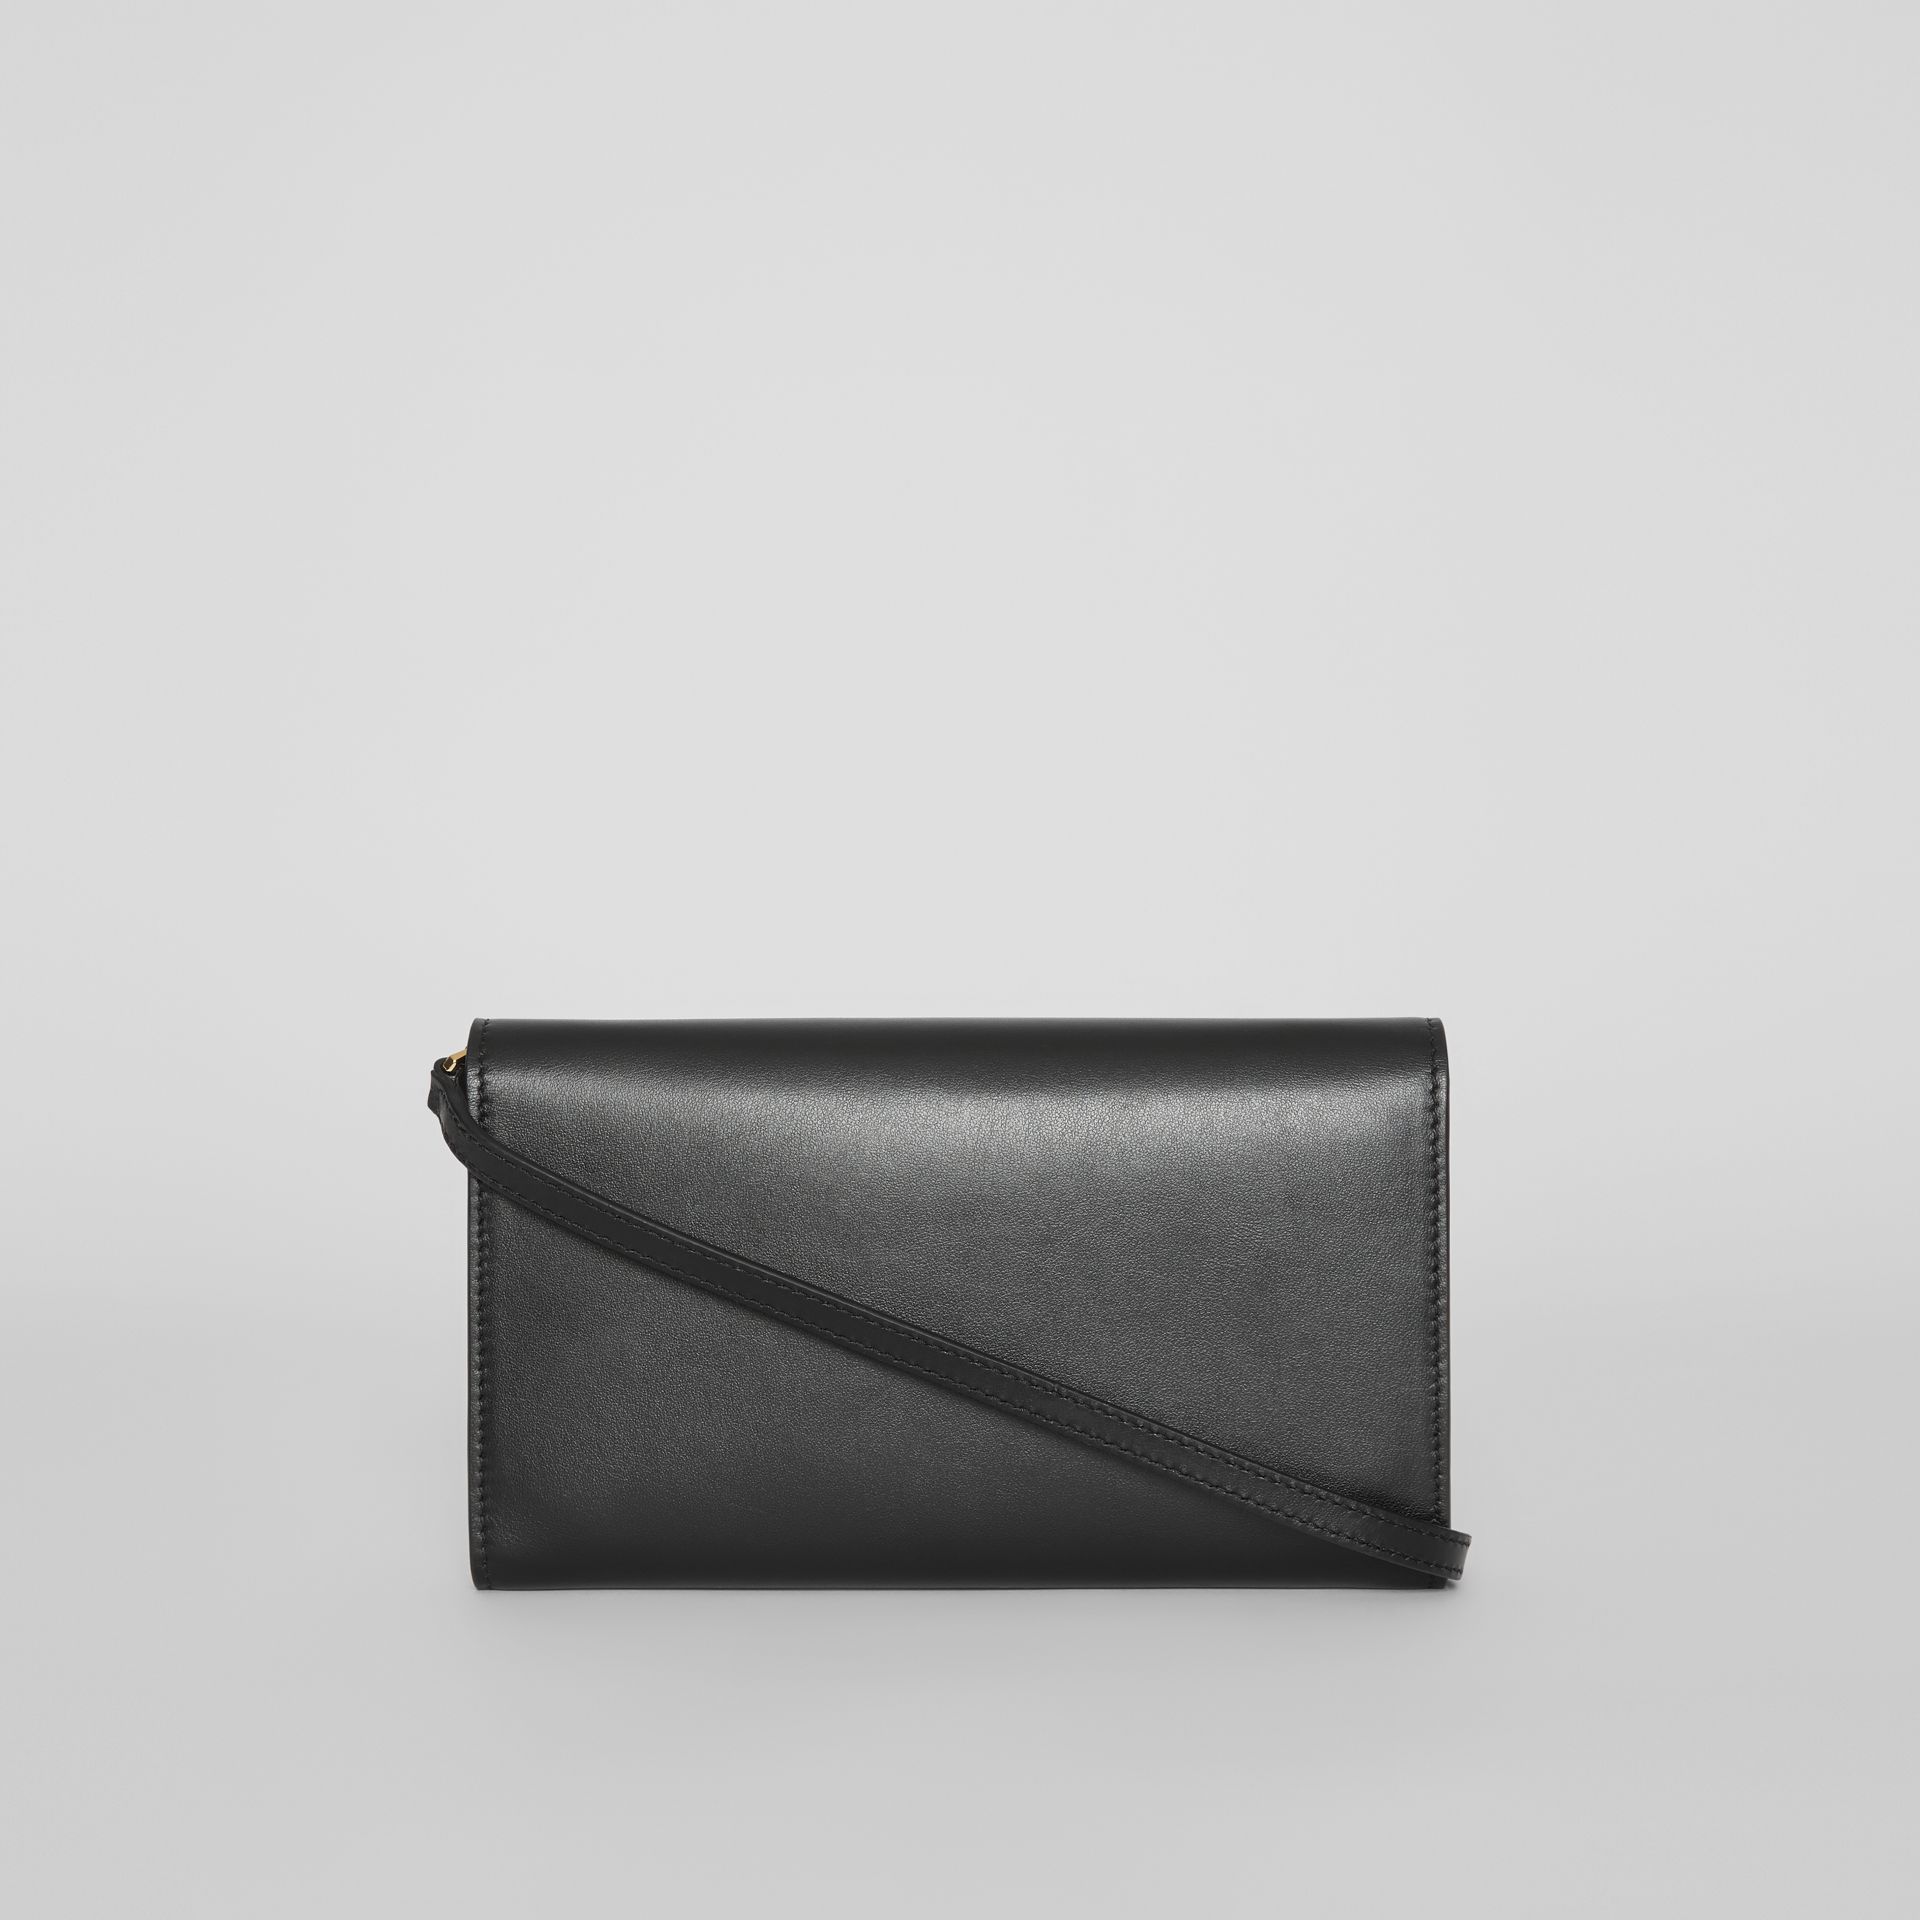 Monogram Motif Leather Wallet with Detachable Strap in Black - Women | Burberry Australia - gallery image 6